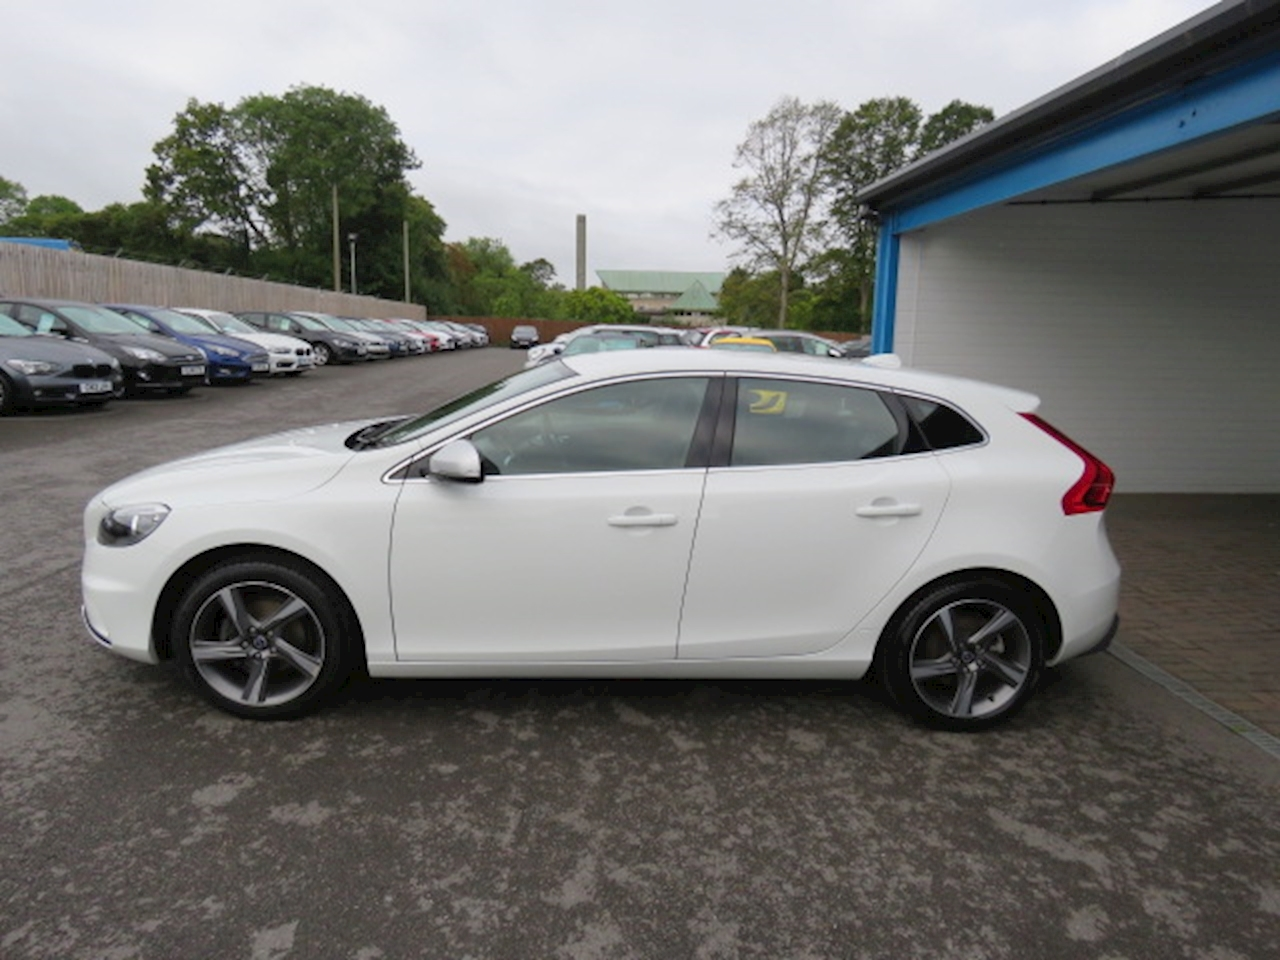 Volvo V40 R-Design 1.6 5dr Hatchback Manual Diesel